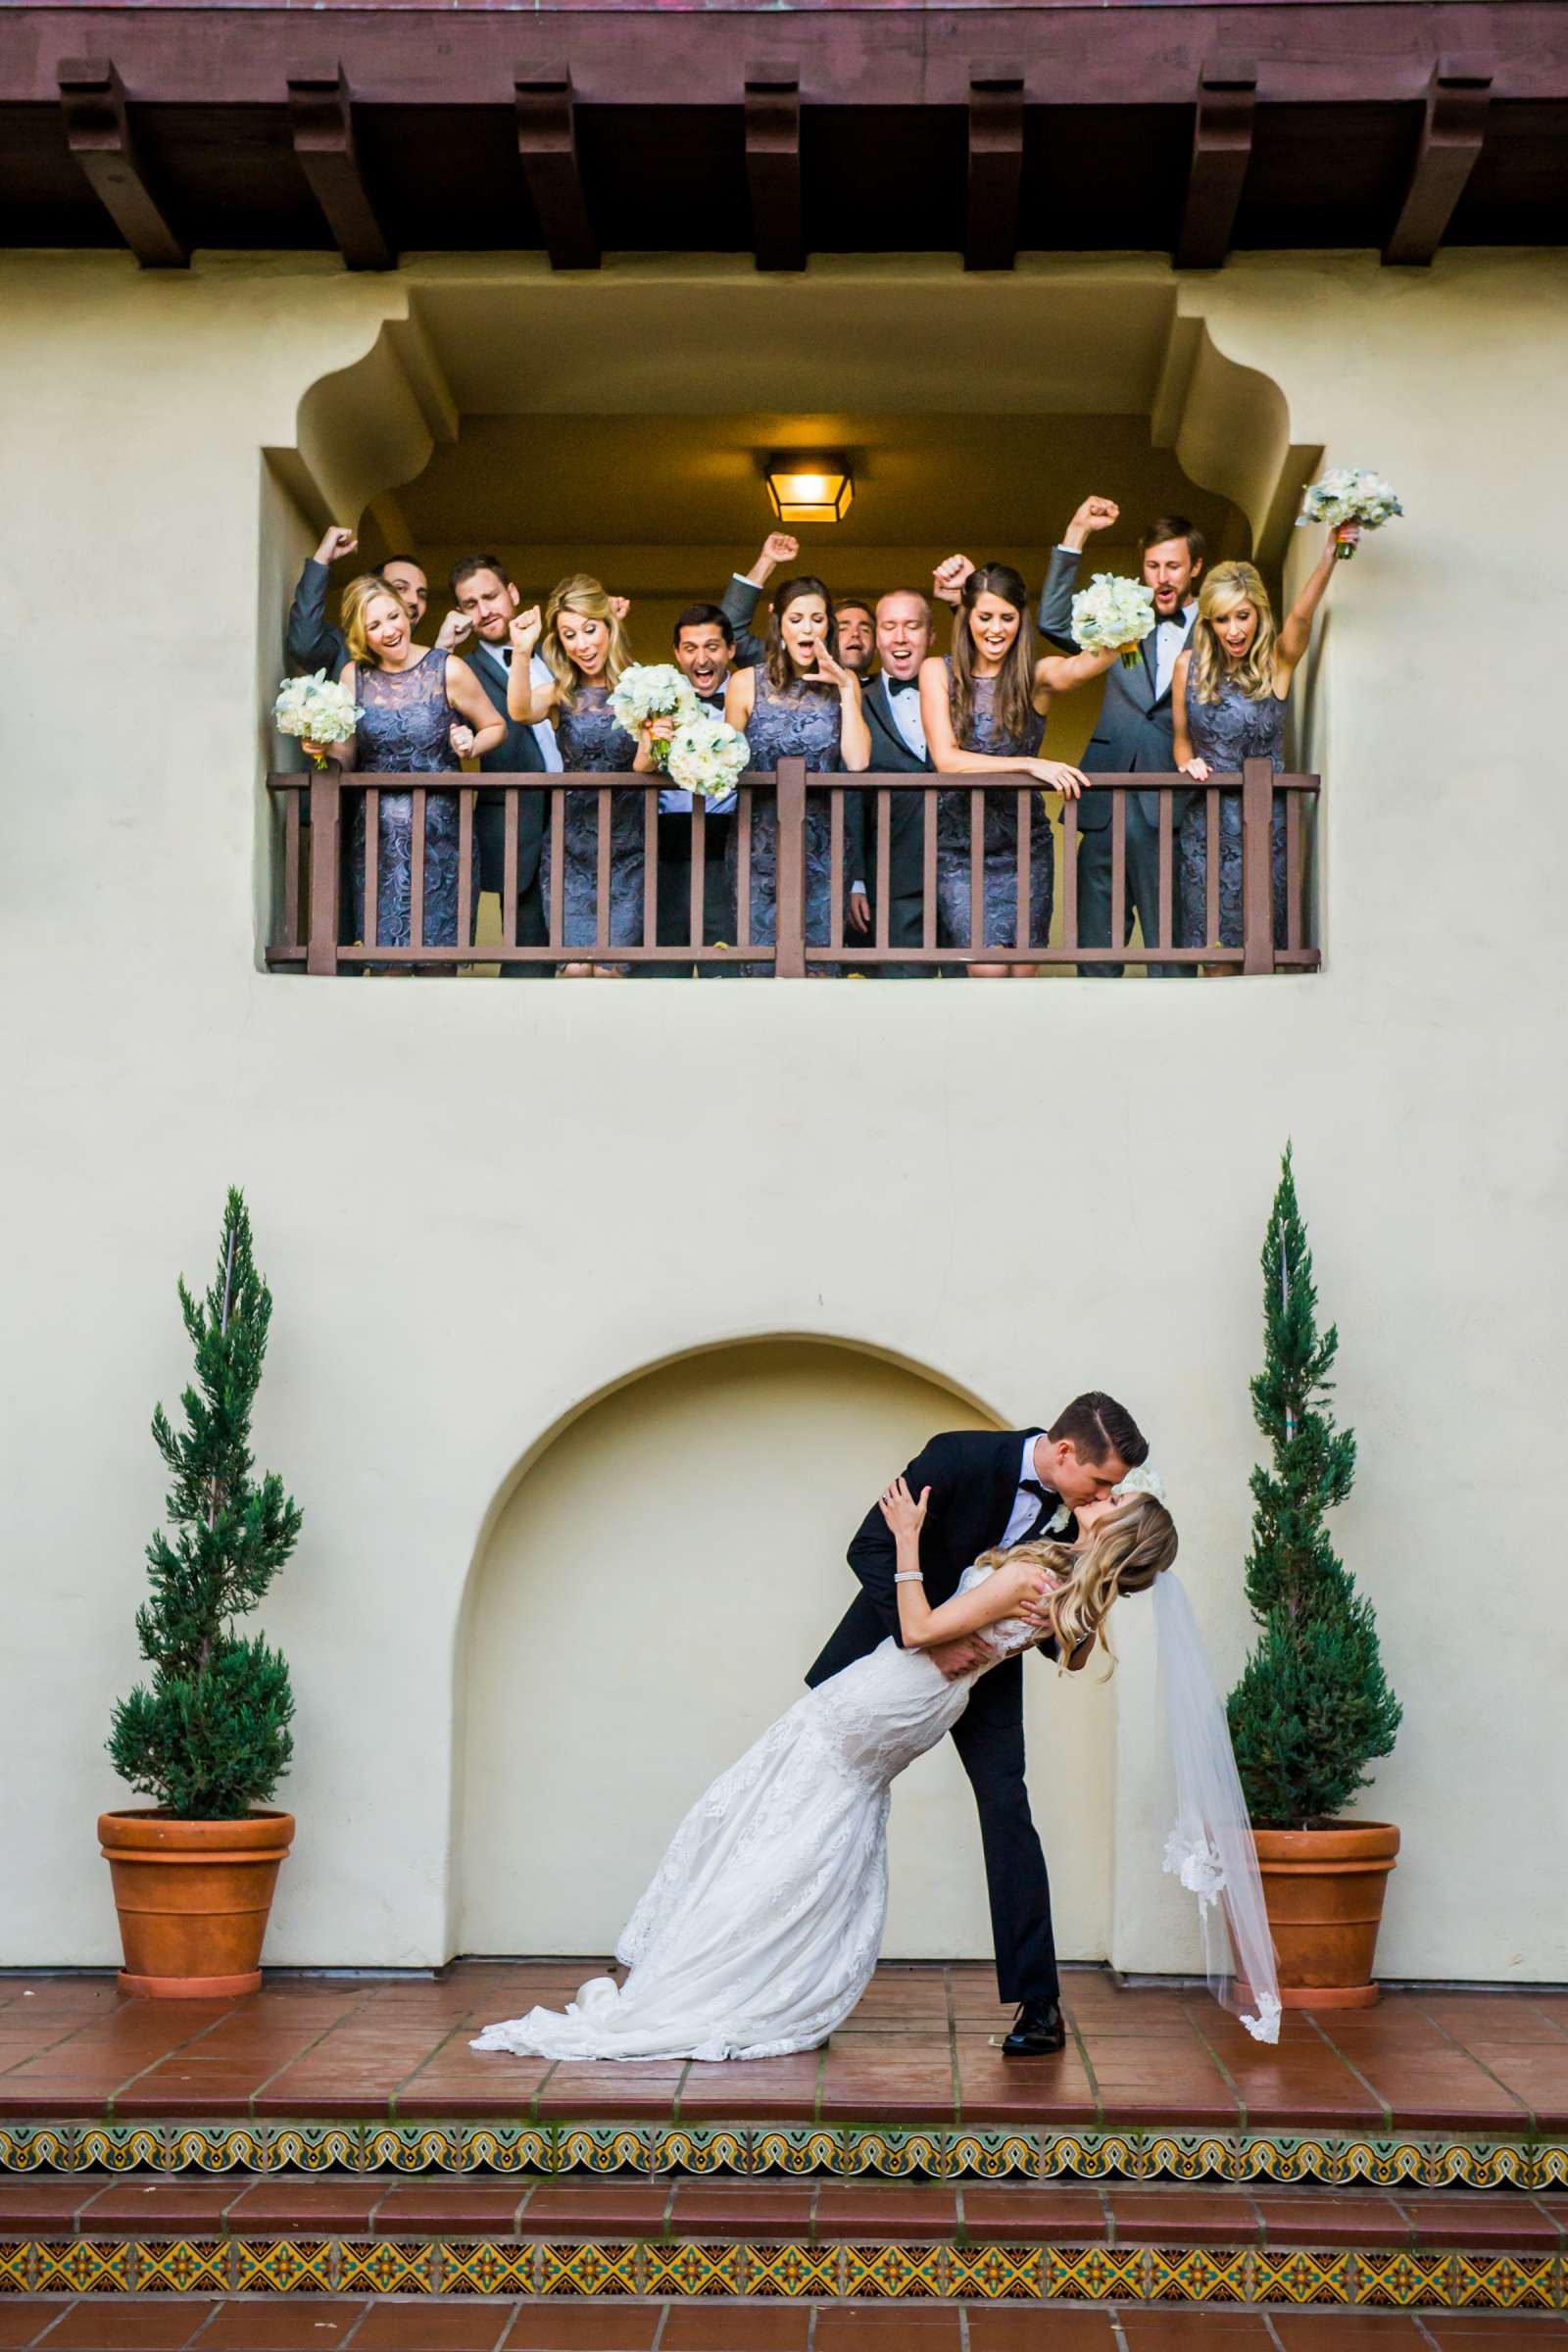 Estancia Wedding coordinated by Sweet Blossom Weddings, Erin and Shaeffer Wedding Photo #24 by True Photography